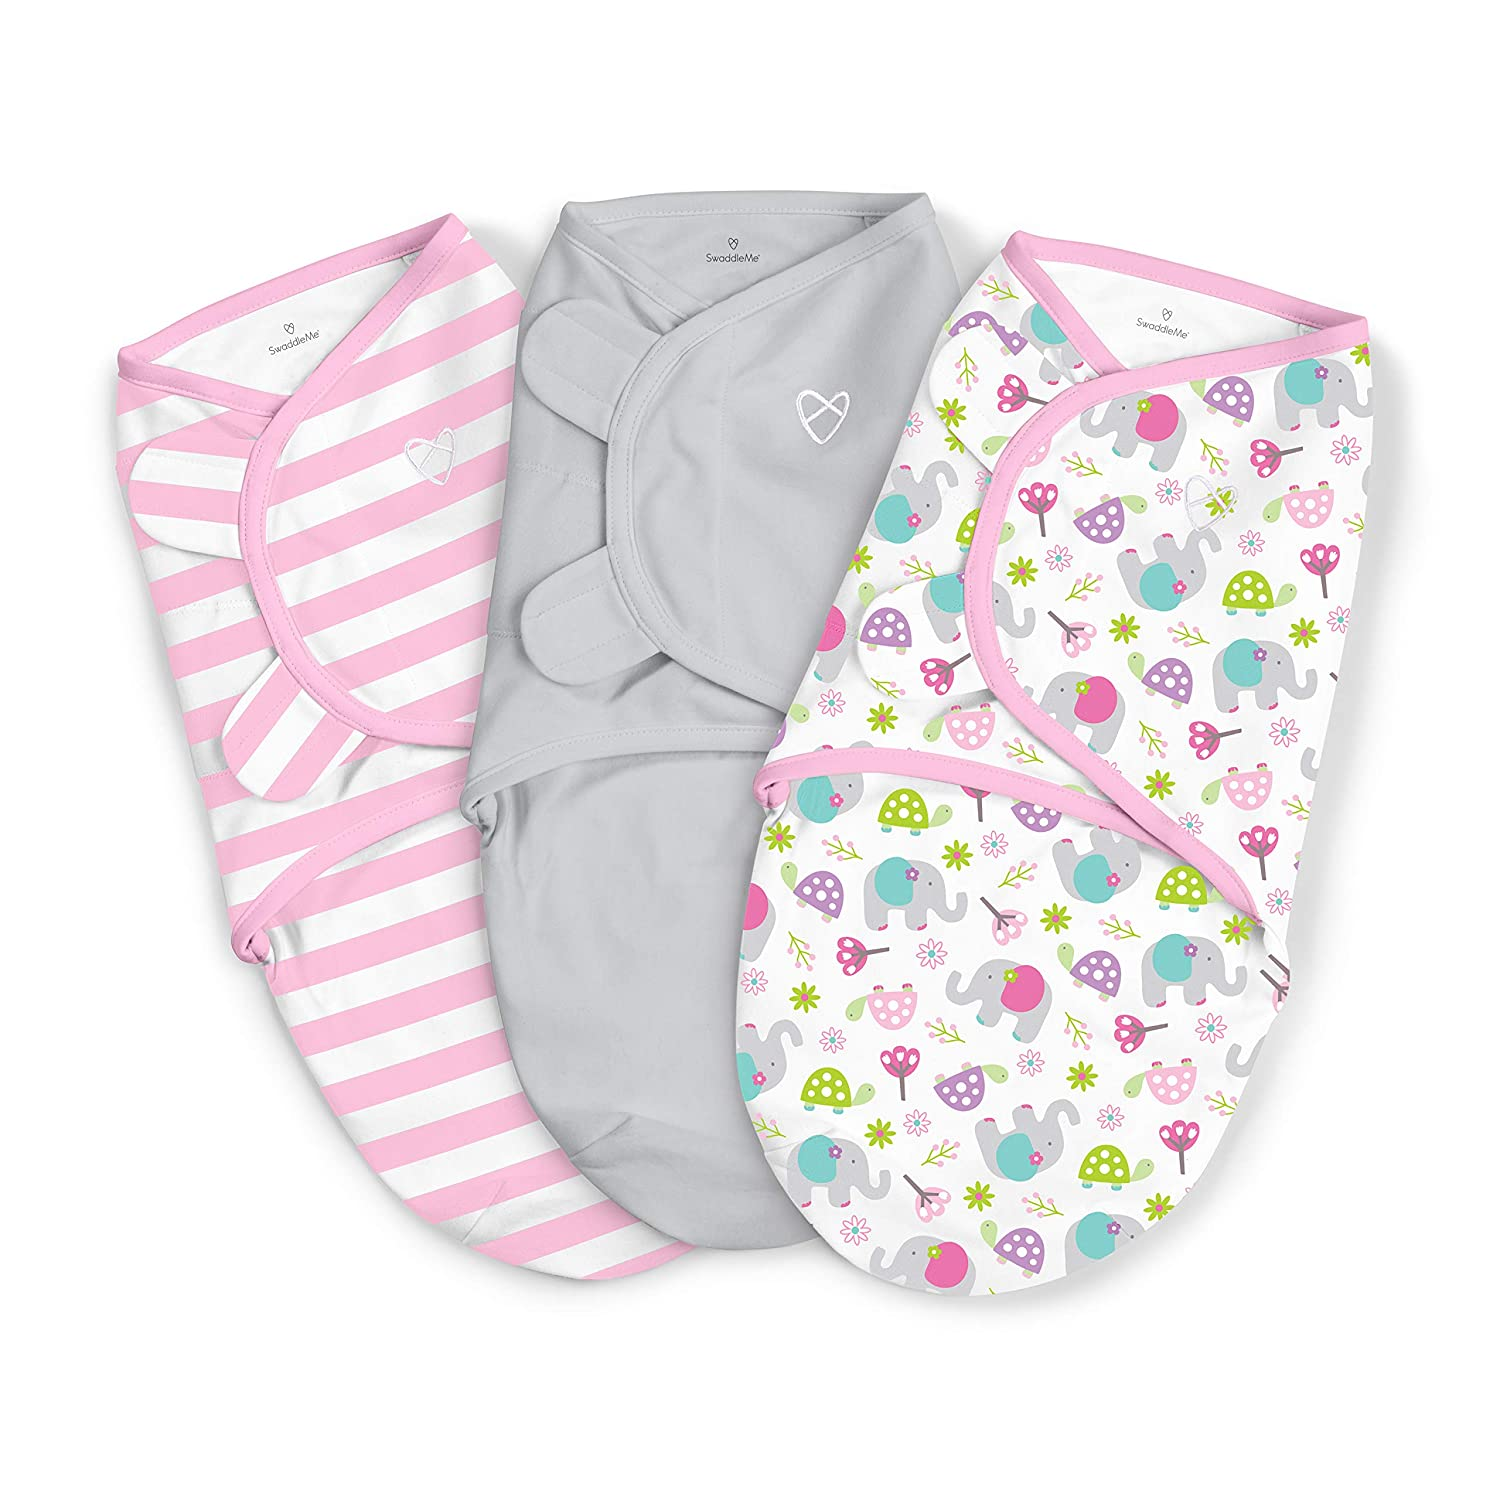 SwaddleMe Original Swaddle,Ellie Flower Small (0-3 Months),Pack of 3